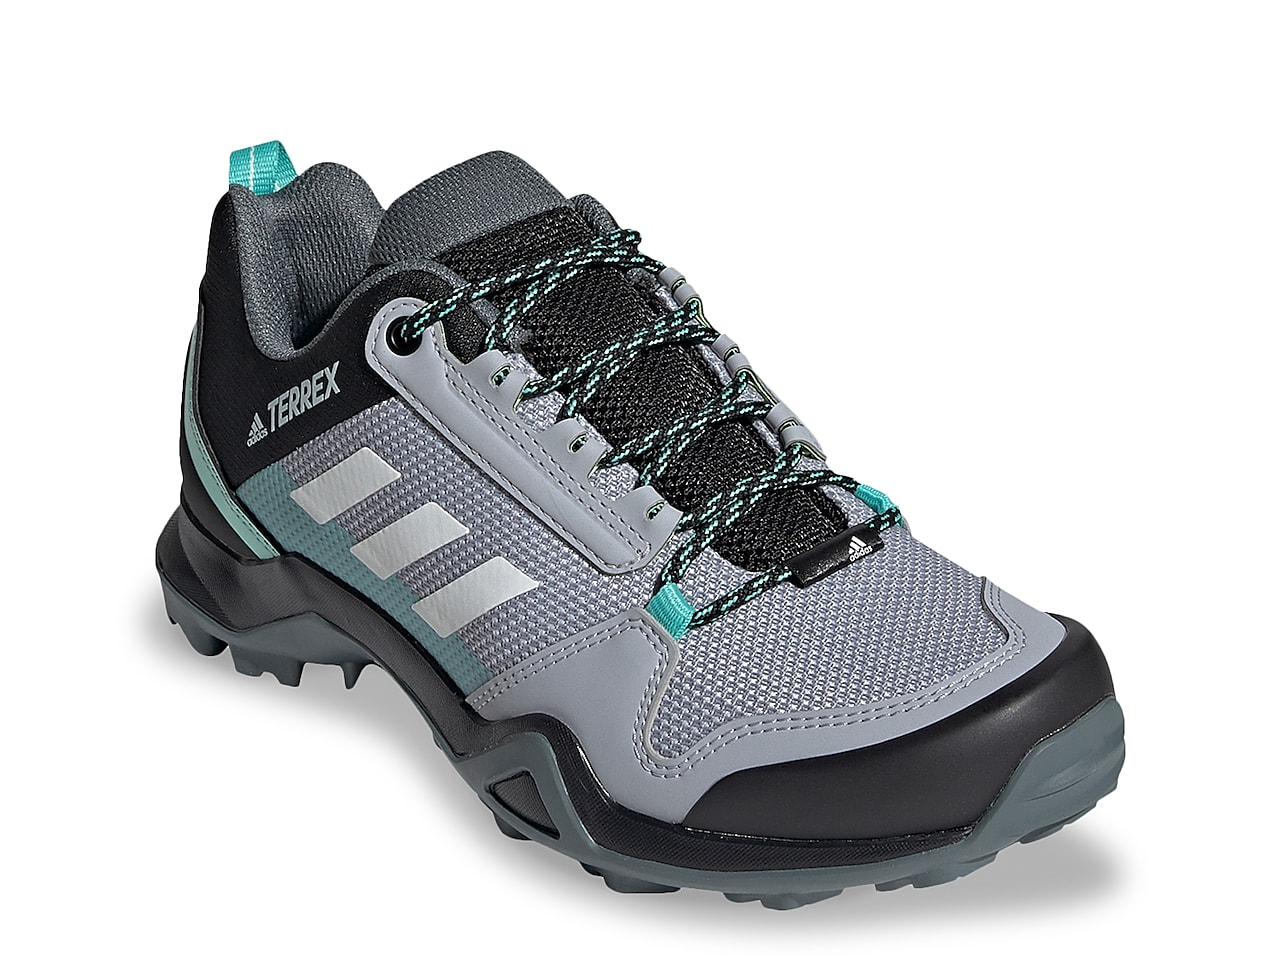 Terrex AX3 Hiking Shoe - Women's